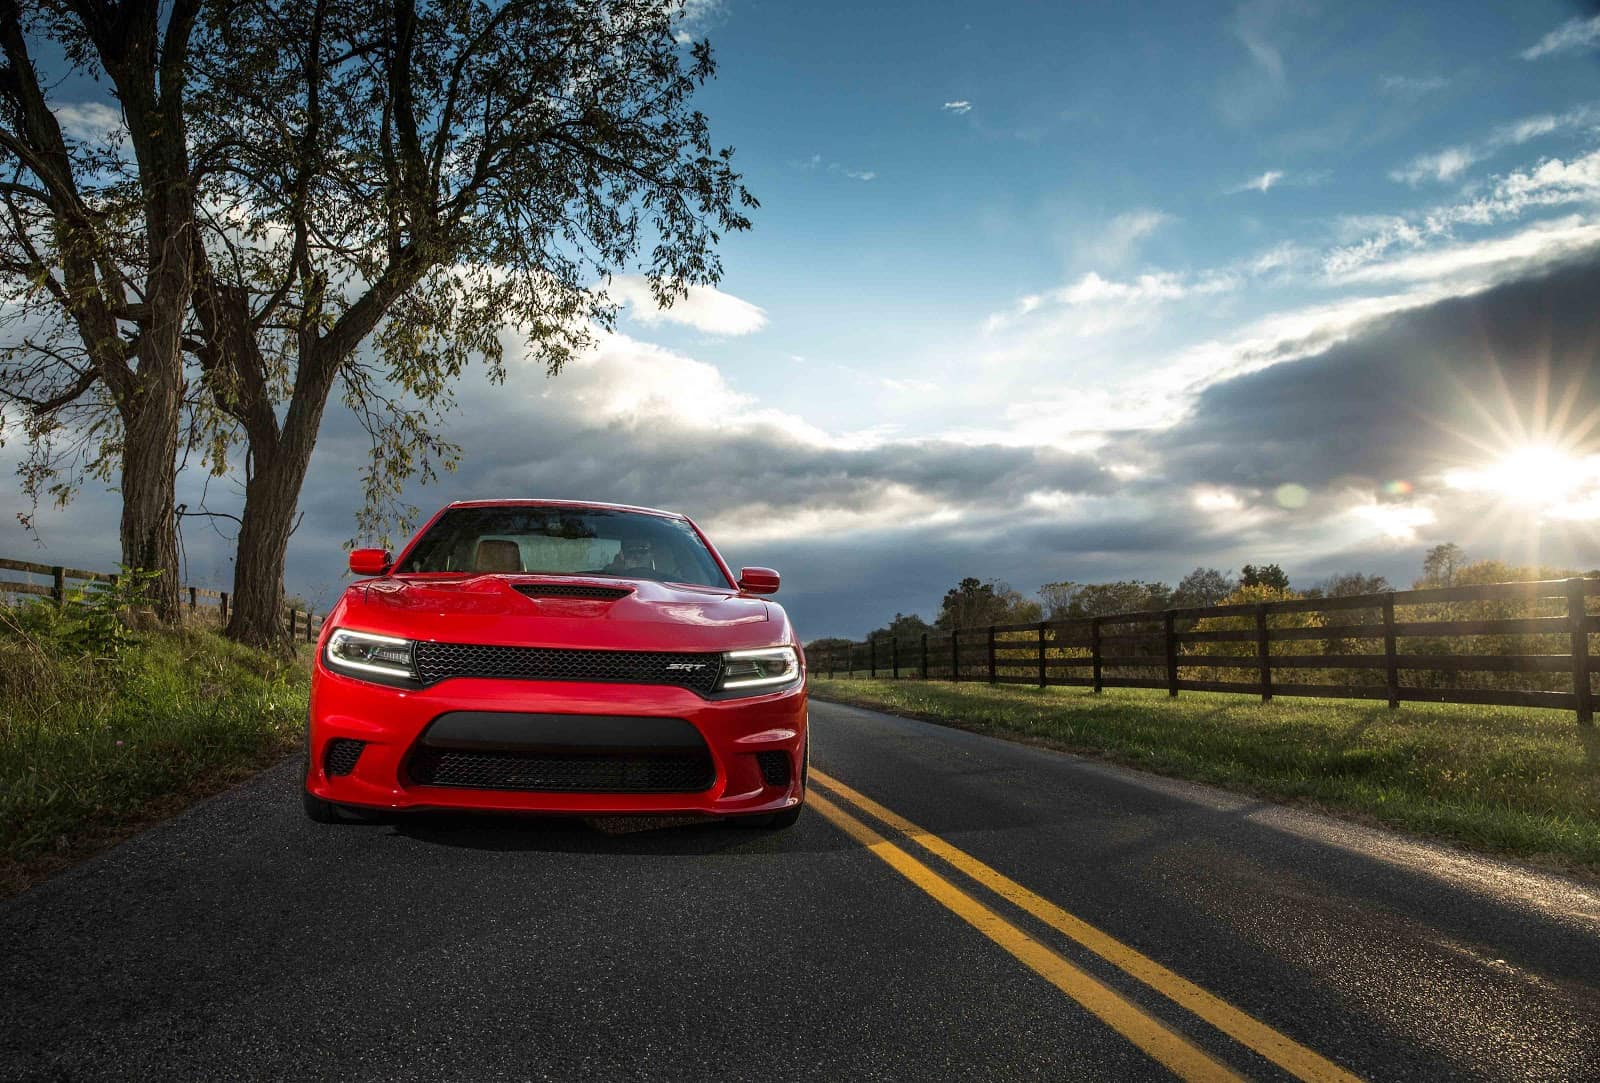 2019 Dodge Charger in Red Driving Down Country Road with Fields of Green on both sides